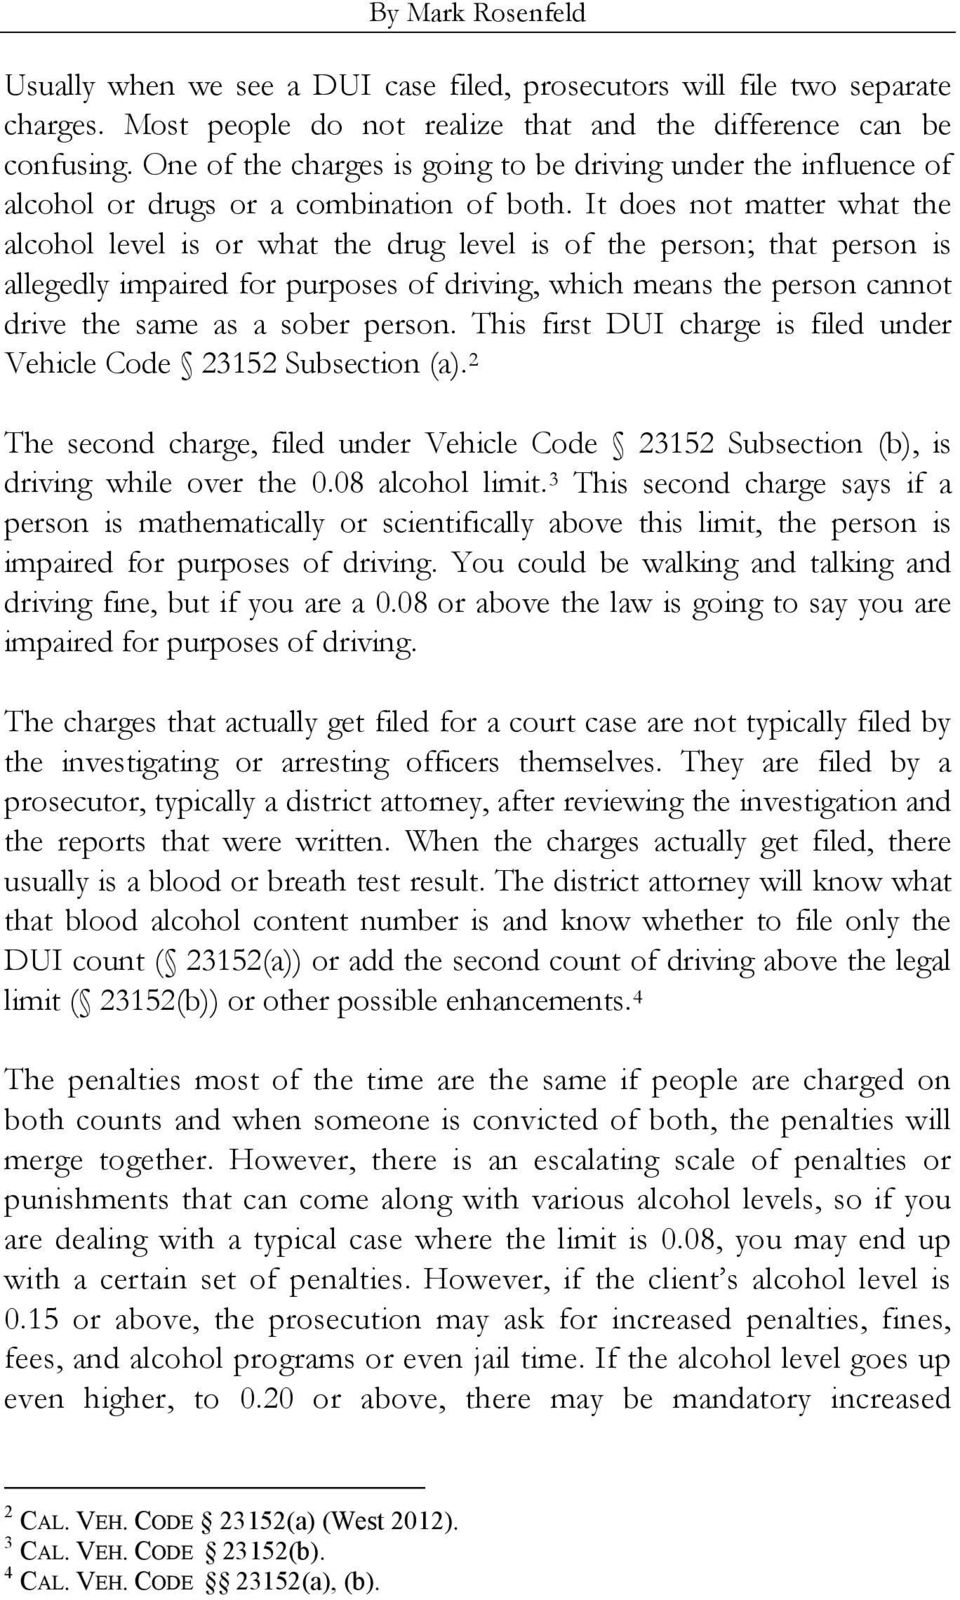 It does not matter what the alcohol level is or what the drug level is of the person; that person is allegedly impaired for purposes of driving, which means the person cannot drive the same as a